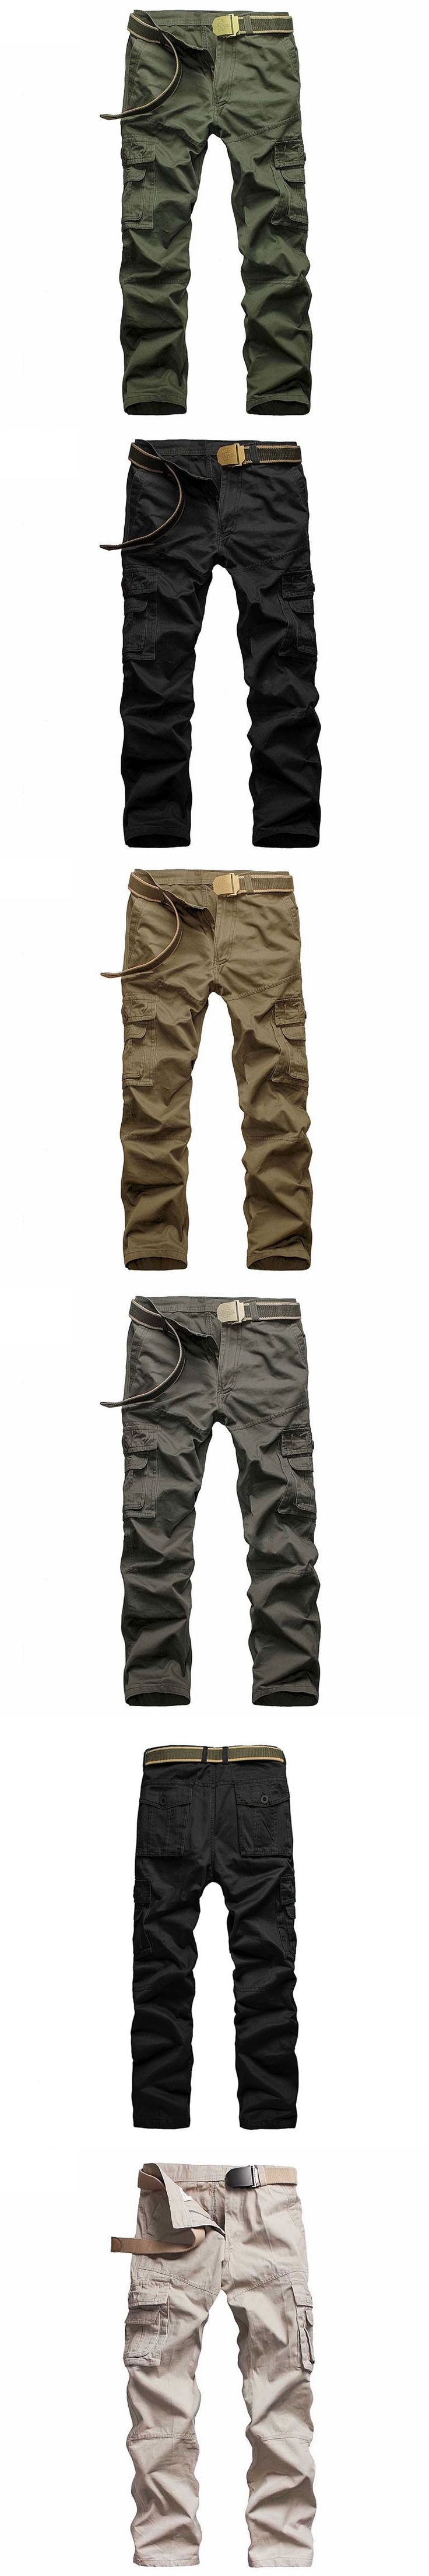 Cargo Pants Men's Casual Fashion Cotton Pants Multi Pocket Military Style Tactical Cargo Trousers Male High Quality Work Pants